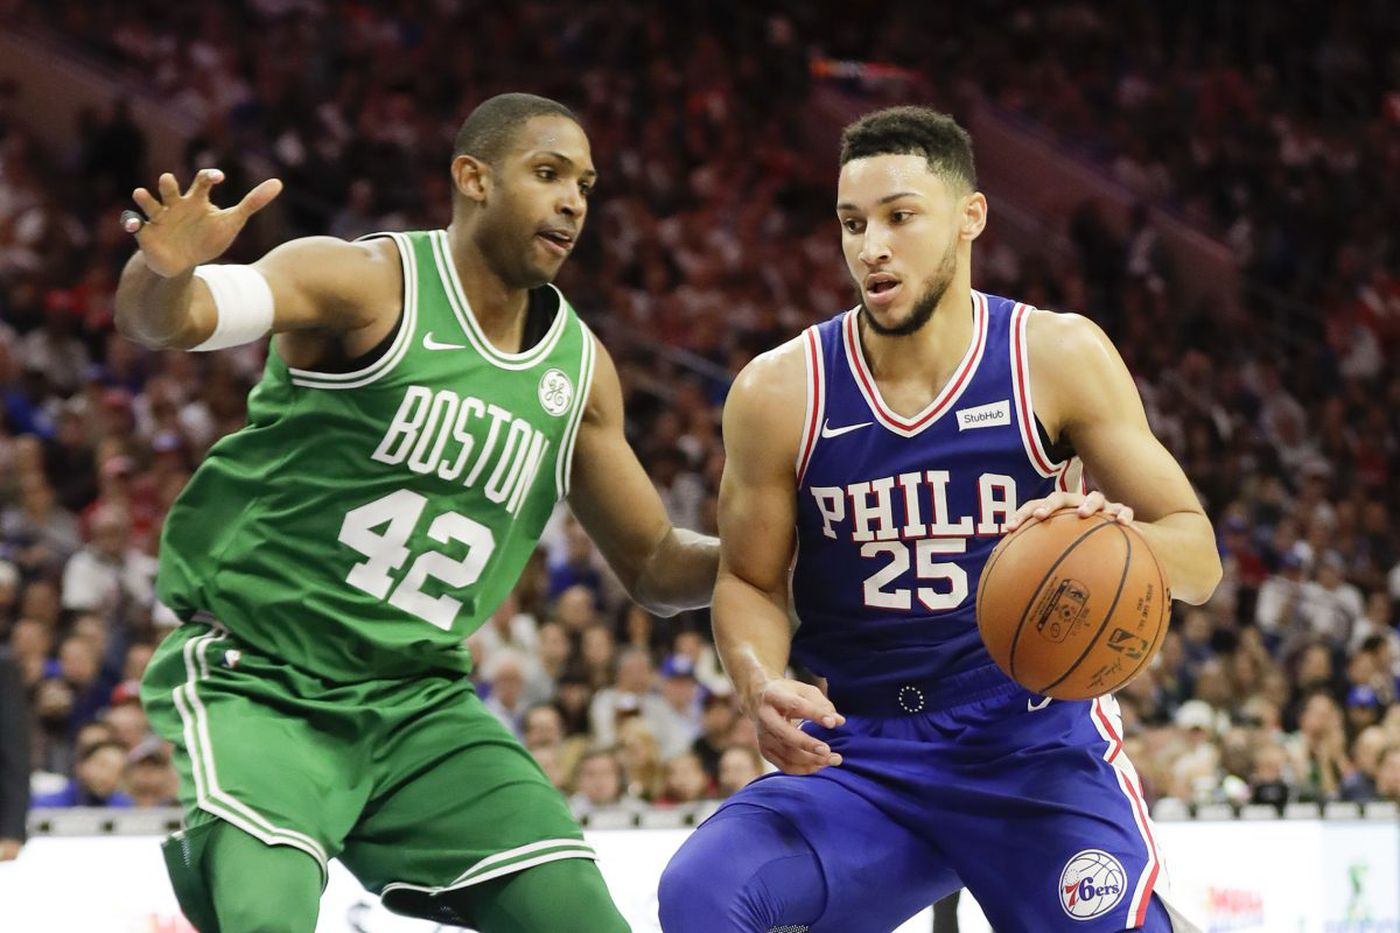 Start times set for first four games of Sixers-Celtics series